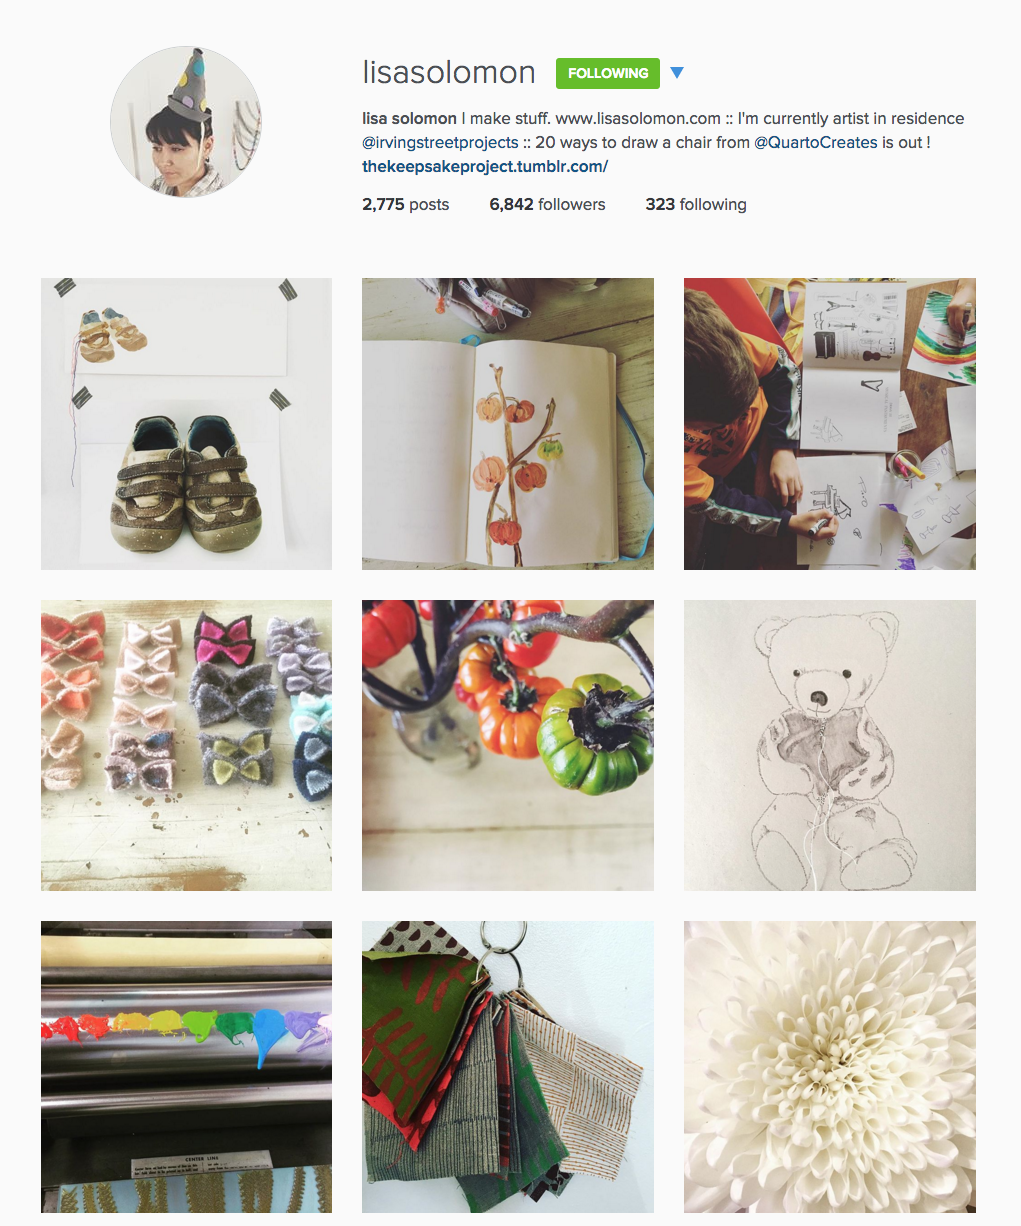 Tips for artists getting started on Instagram - Example of Lisa Solomons account